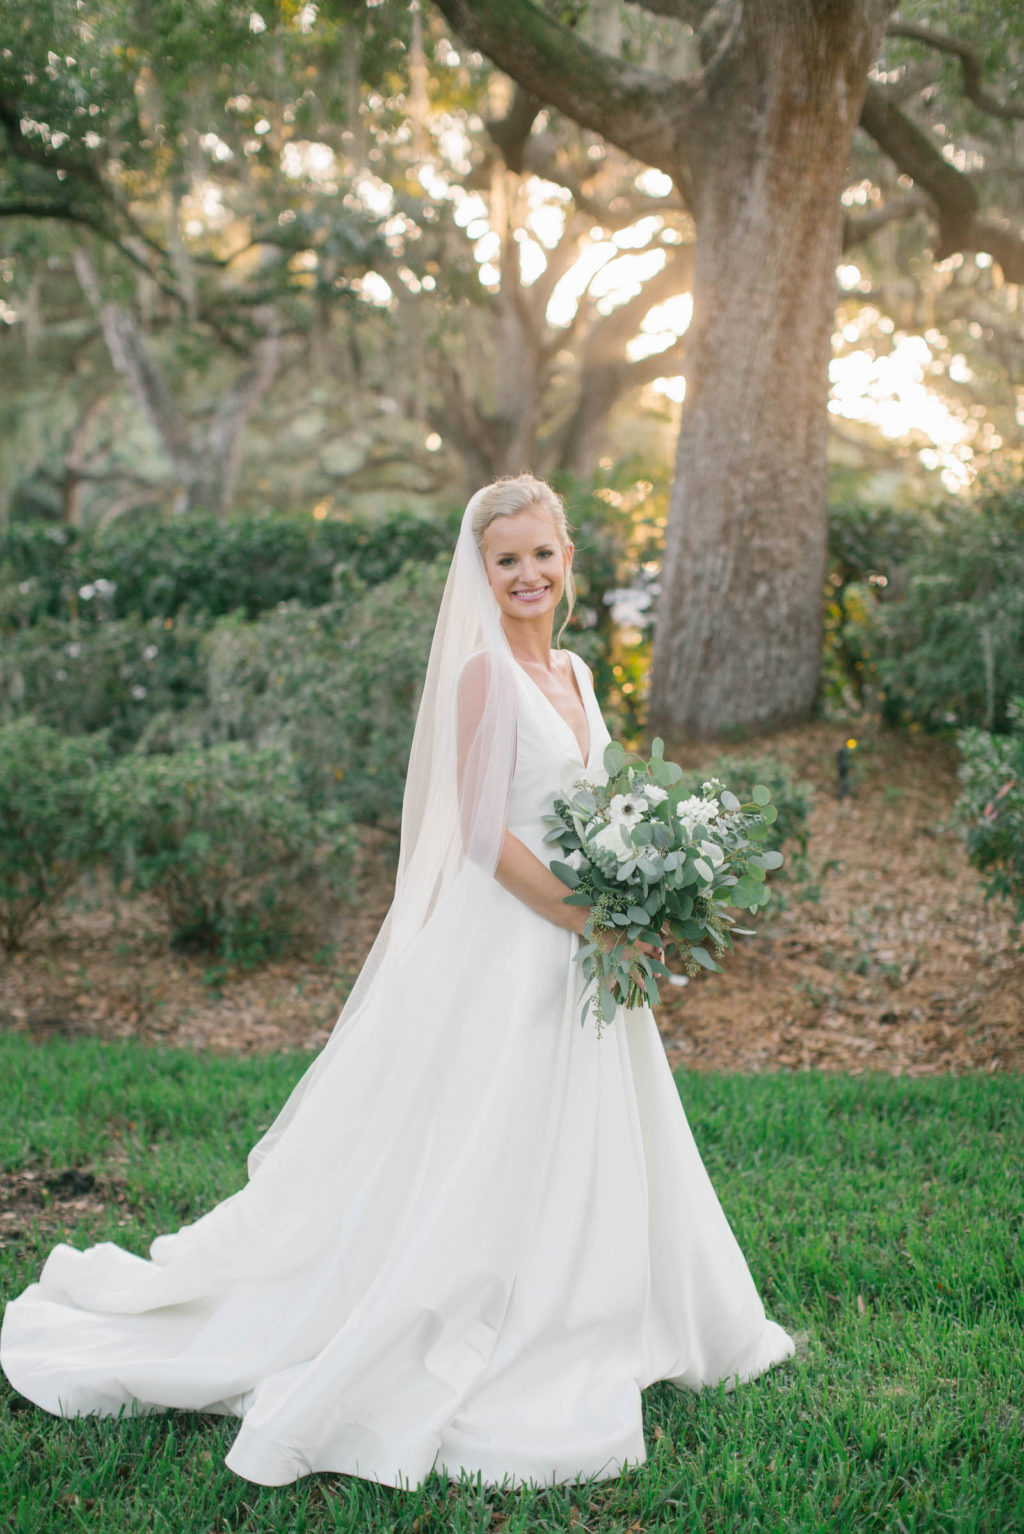 Elegant BHLDN White Wedding Dress with Long Train and Veil | Classic Updo with Simple and Natural Makeup | Tampa Hair and Makeup Artist Femme Akoi Beauty Studio